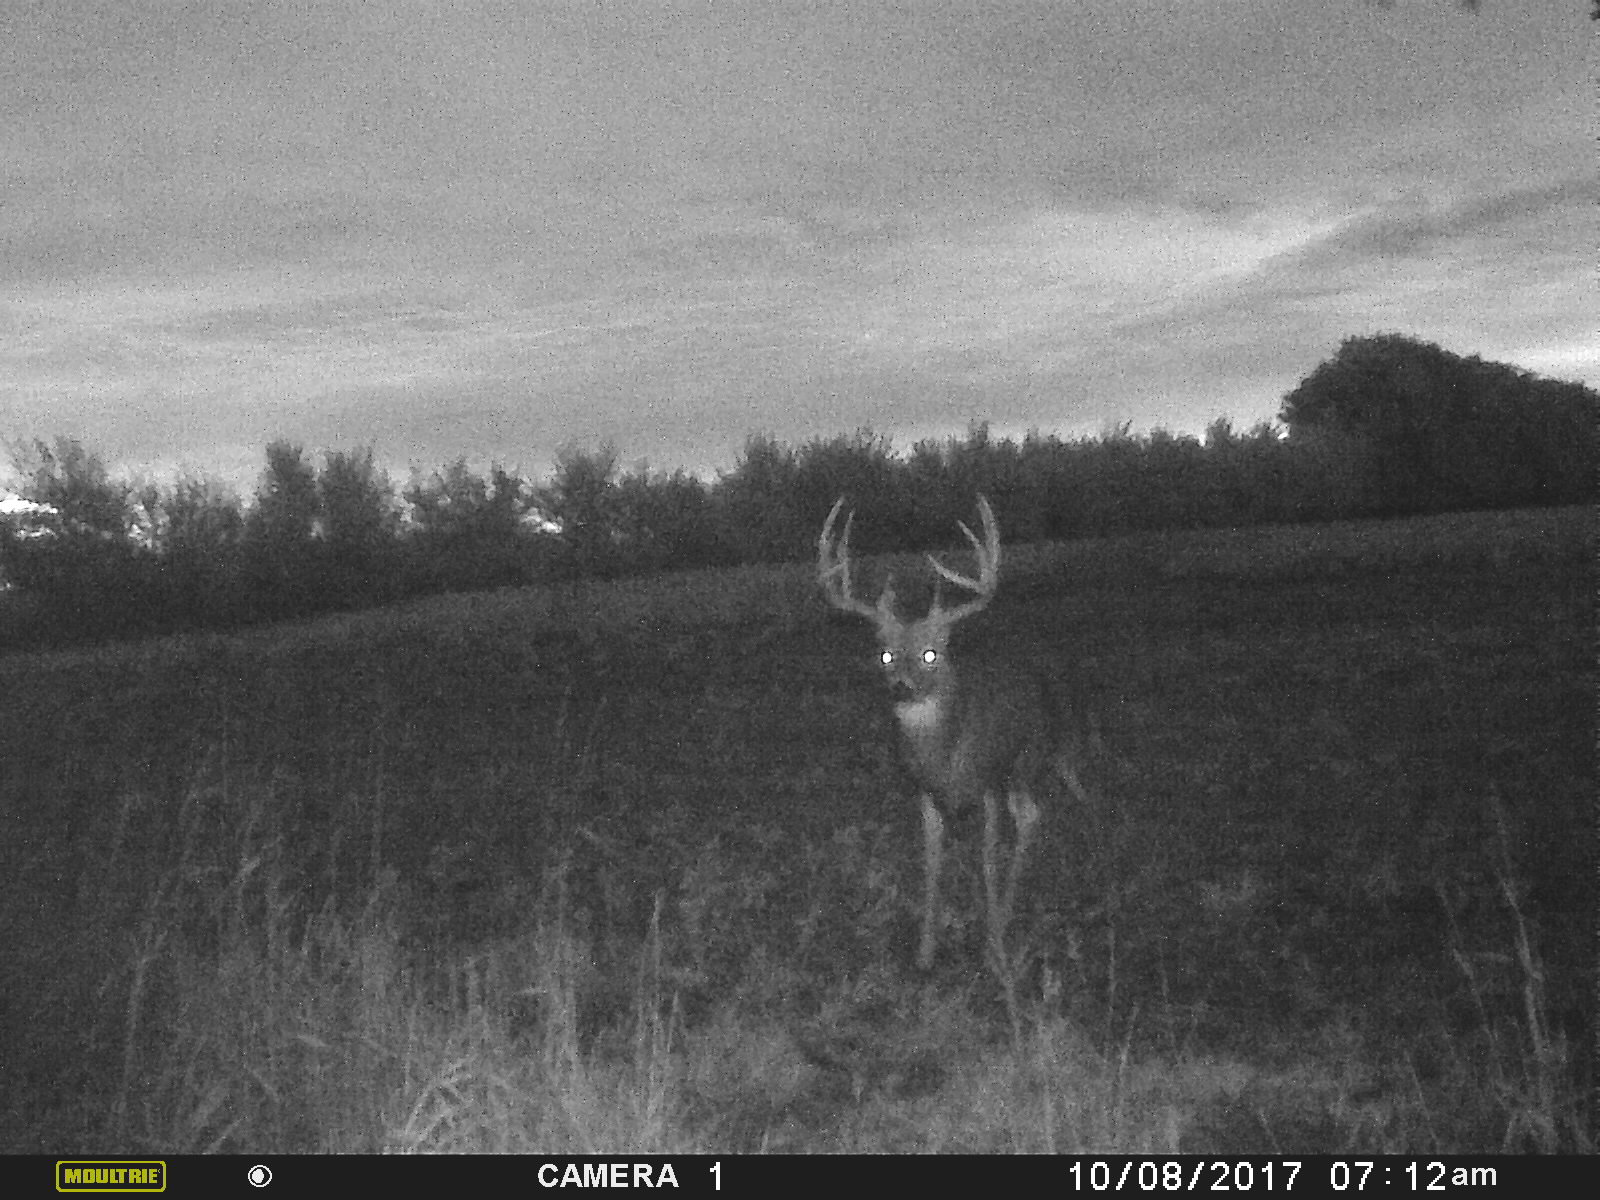 A mature buck can be getting back to bed a little late when the weather conditions are right.